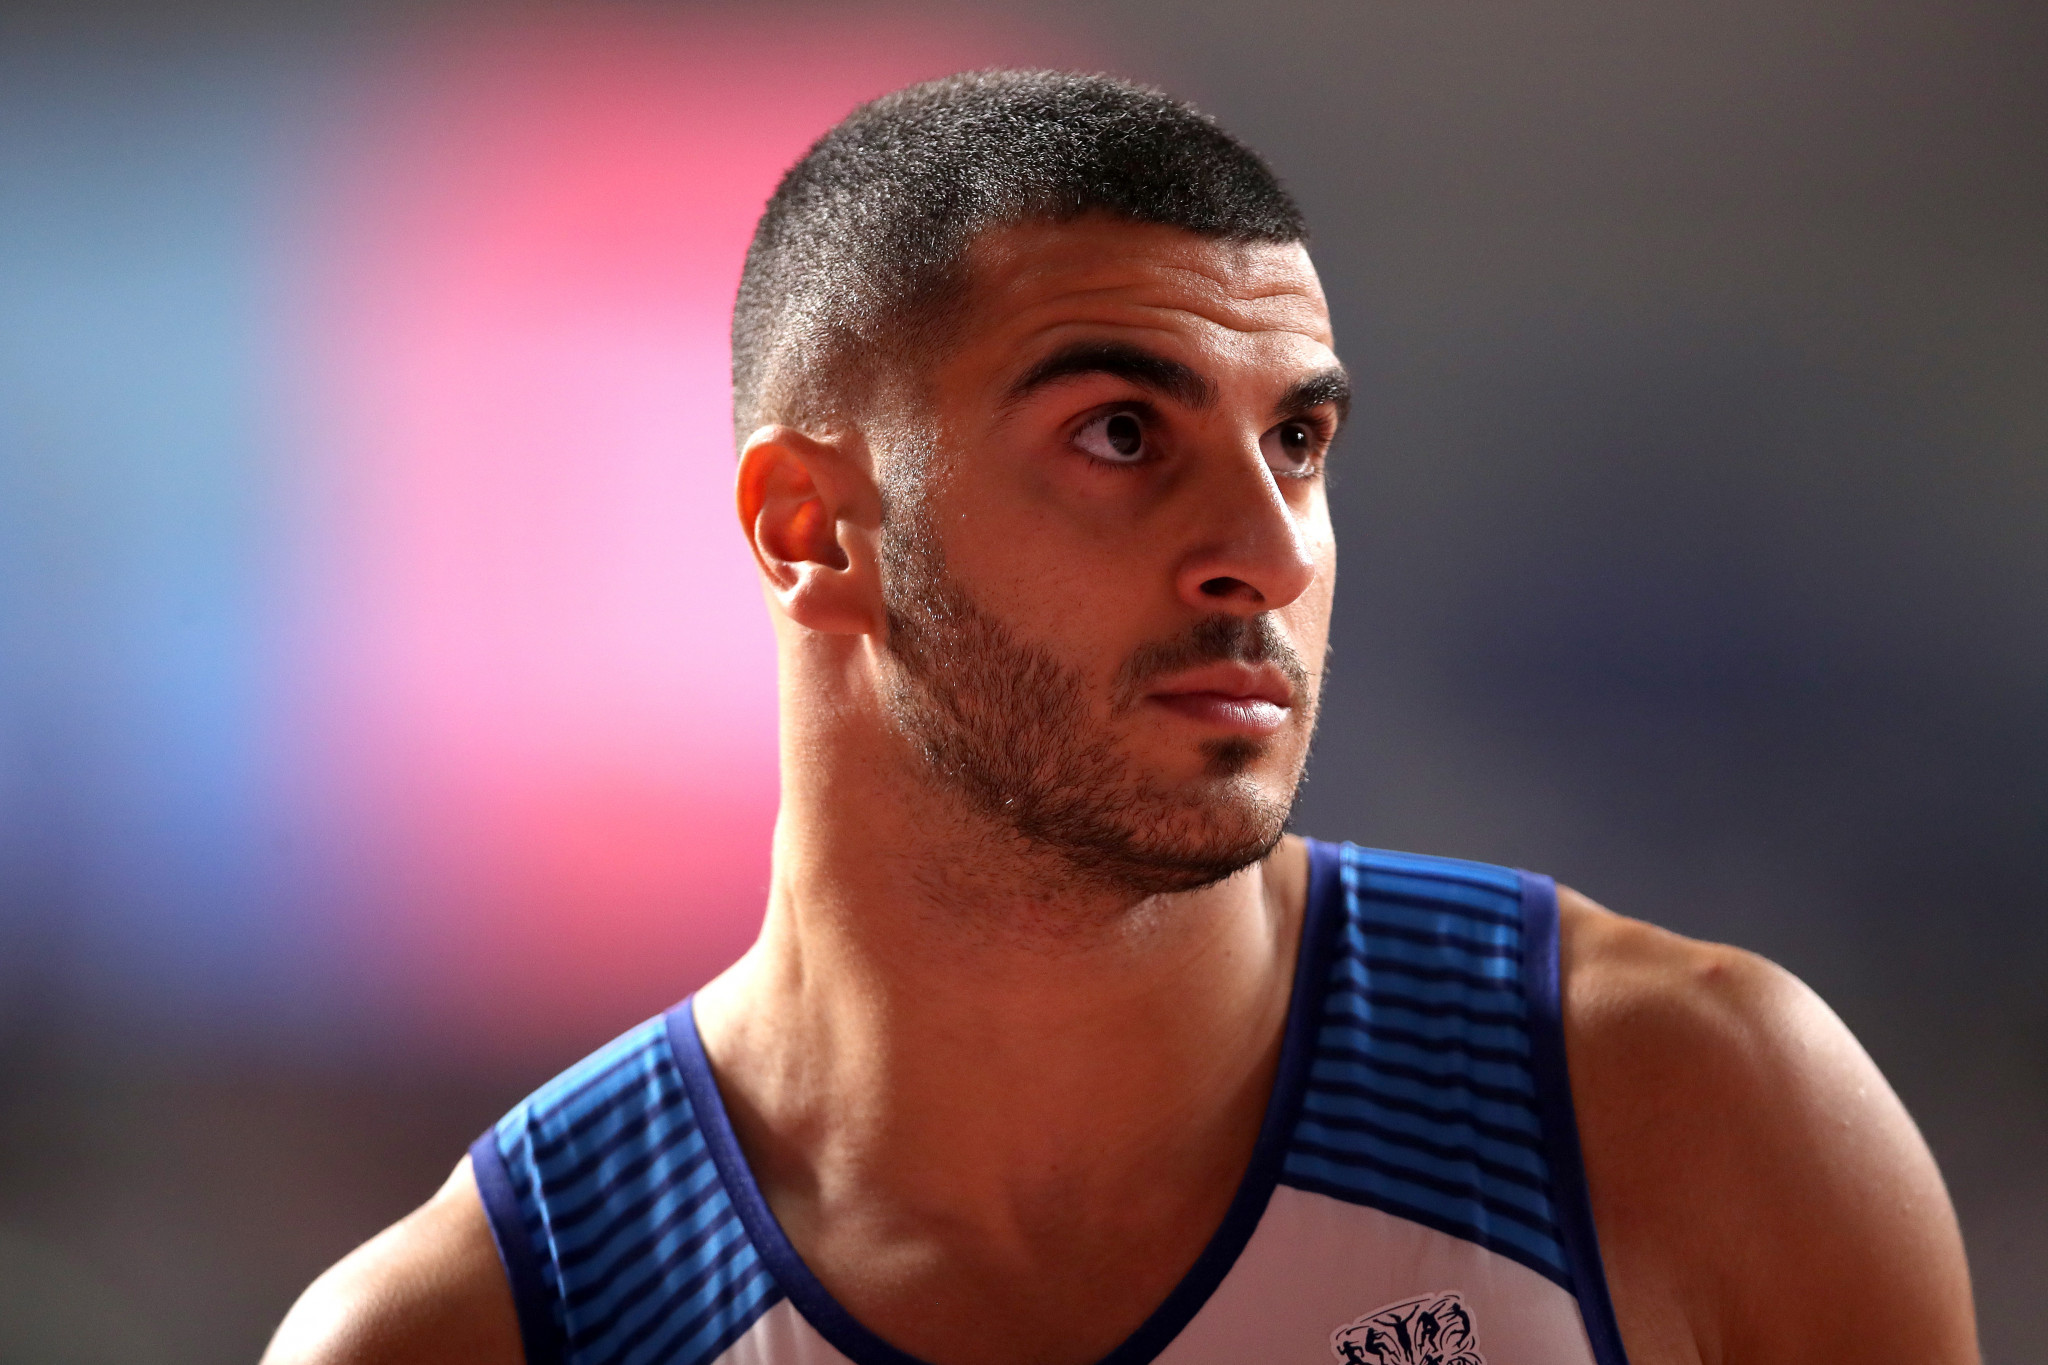 Adam Gemili is leading the group of athletes in challenging the BOA ©Getty Images